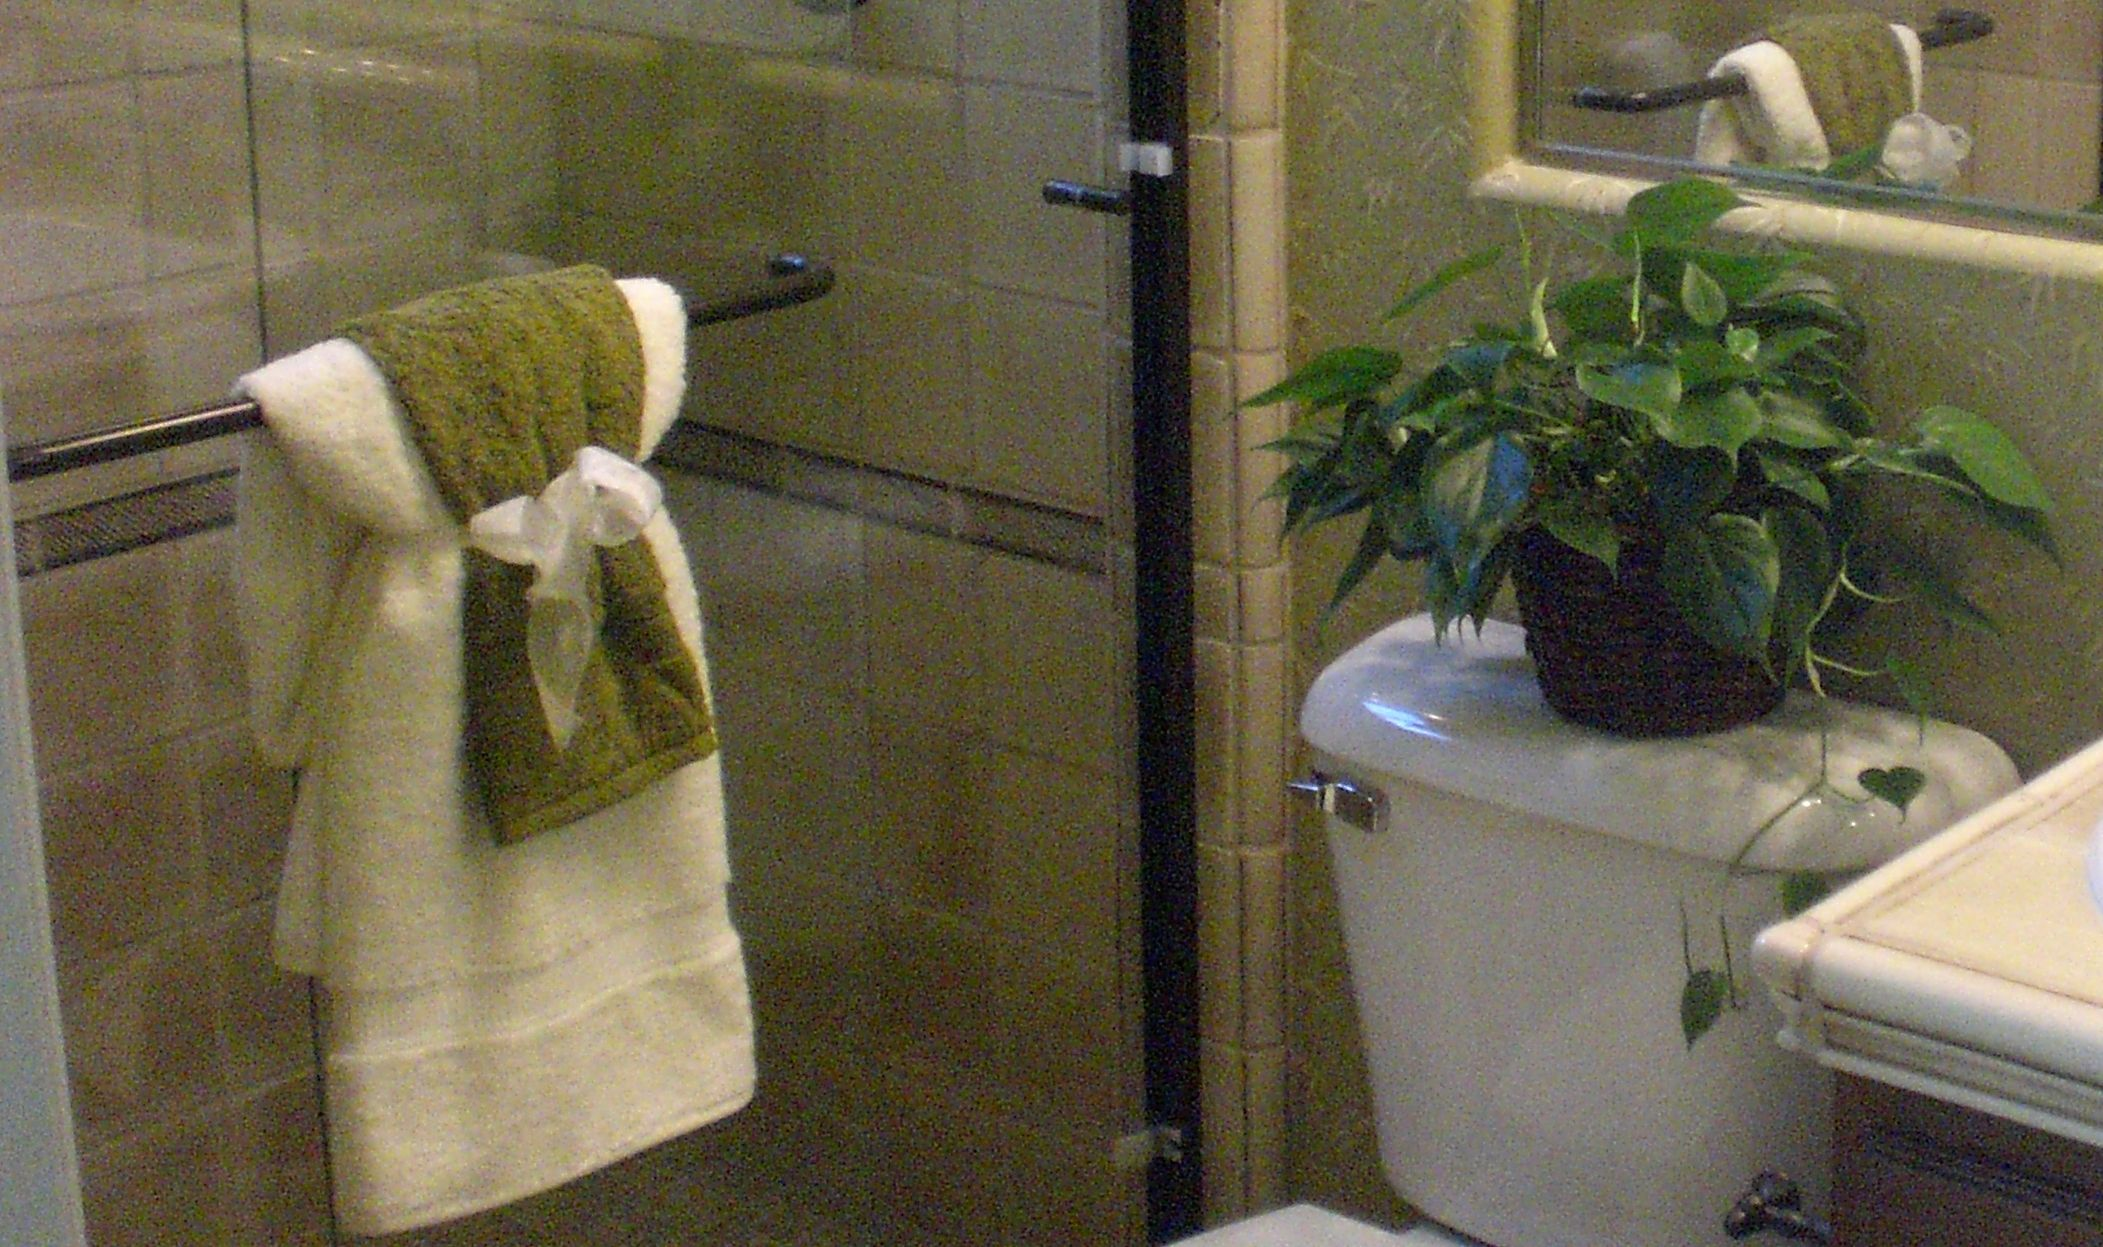 Towel Decorations Everyday Items Towels And Bathroom - Bathroom towel hanging ideas for small bathroom ideas